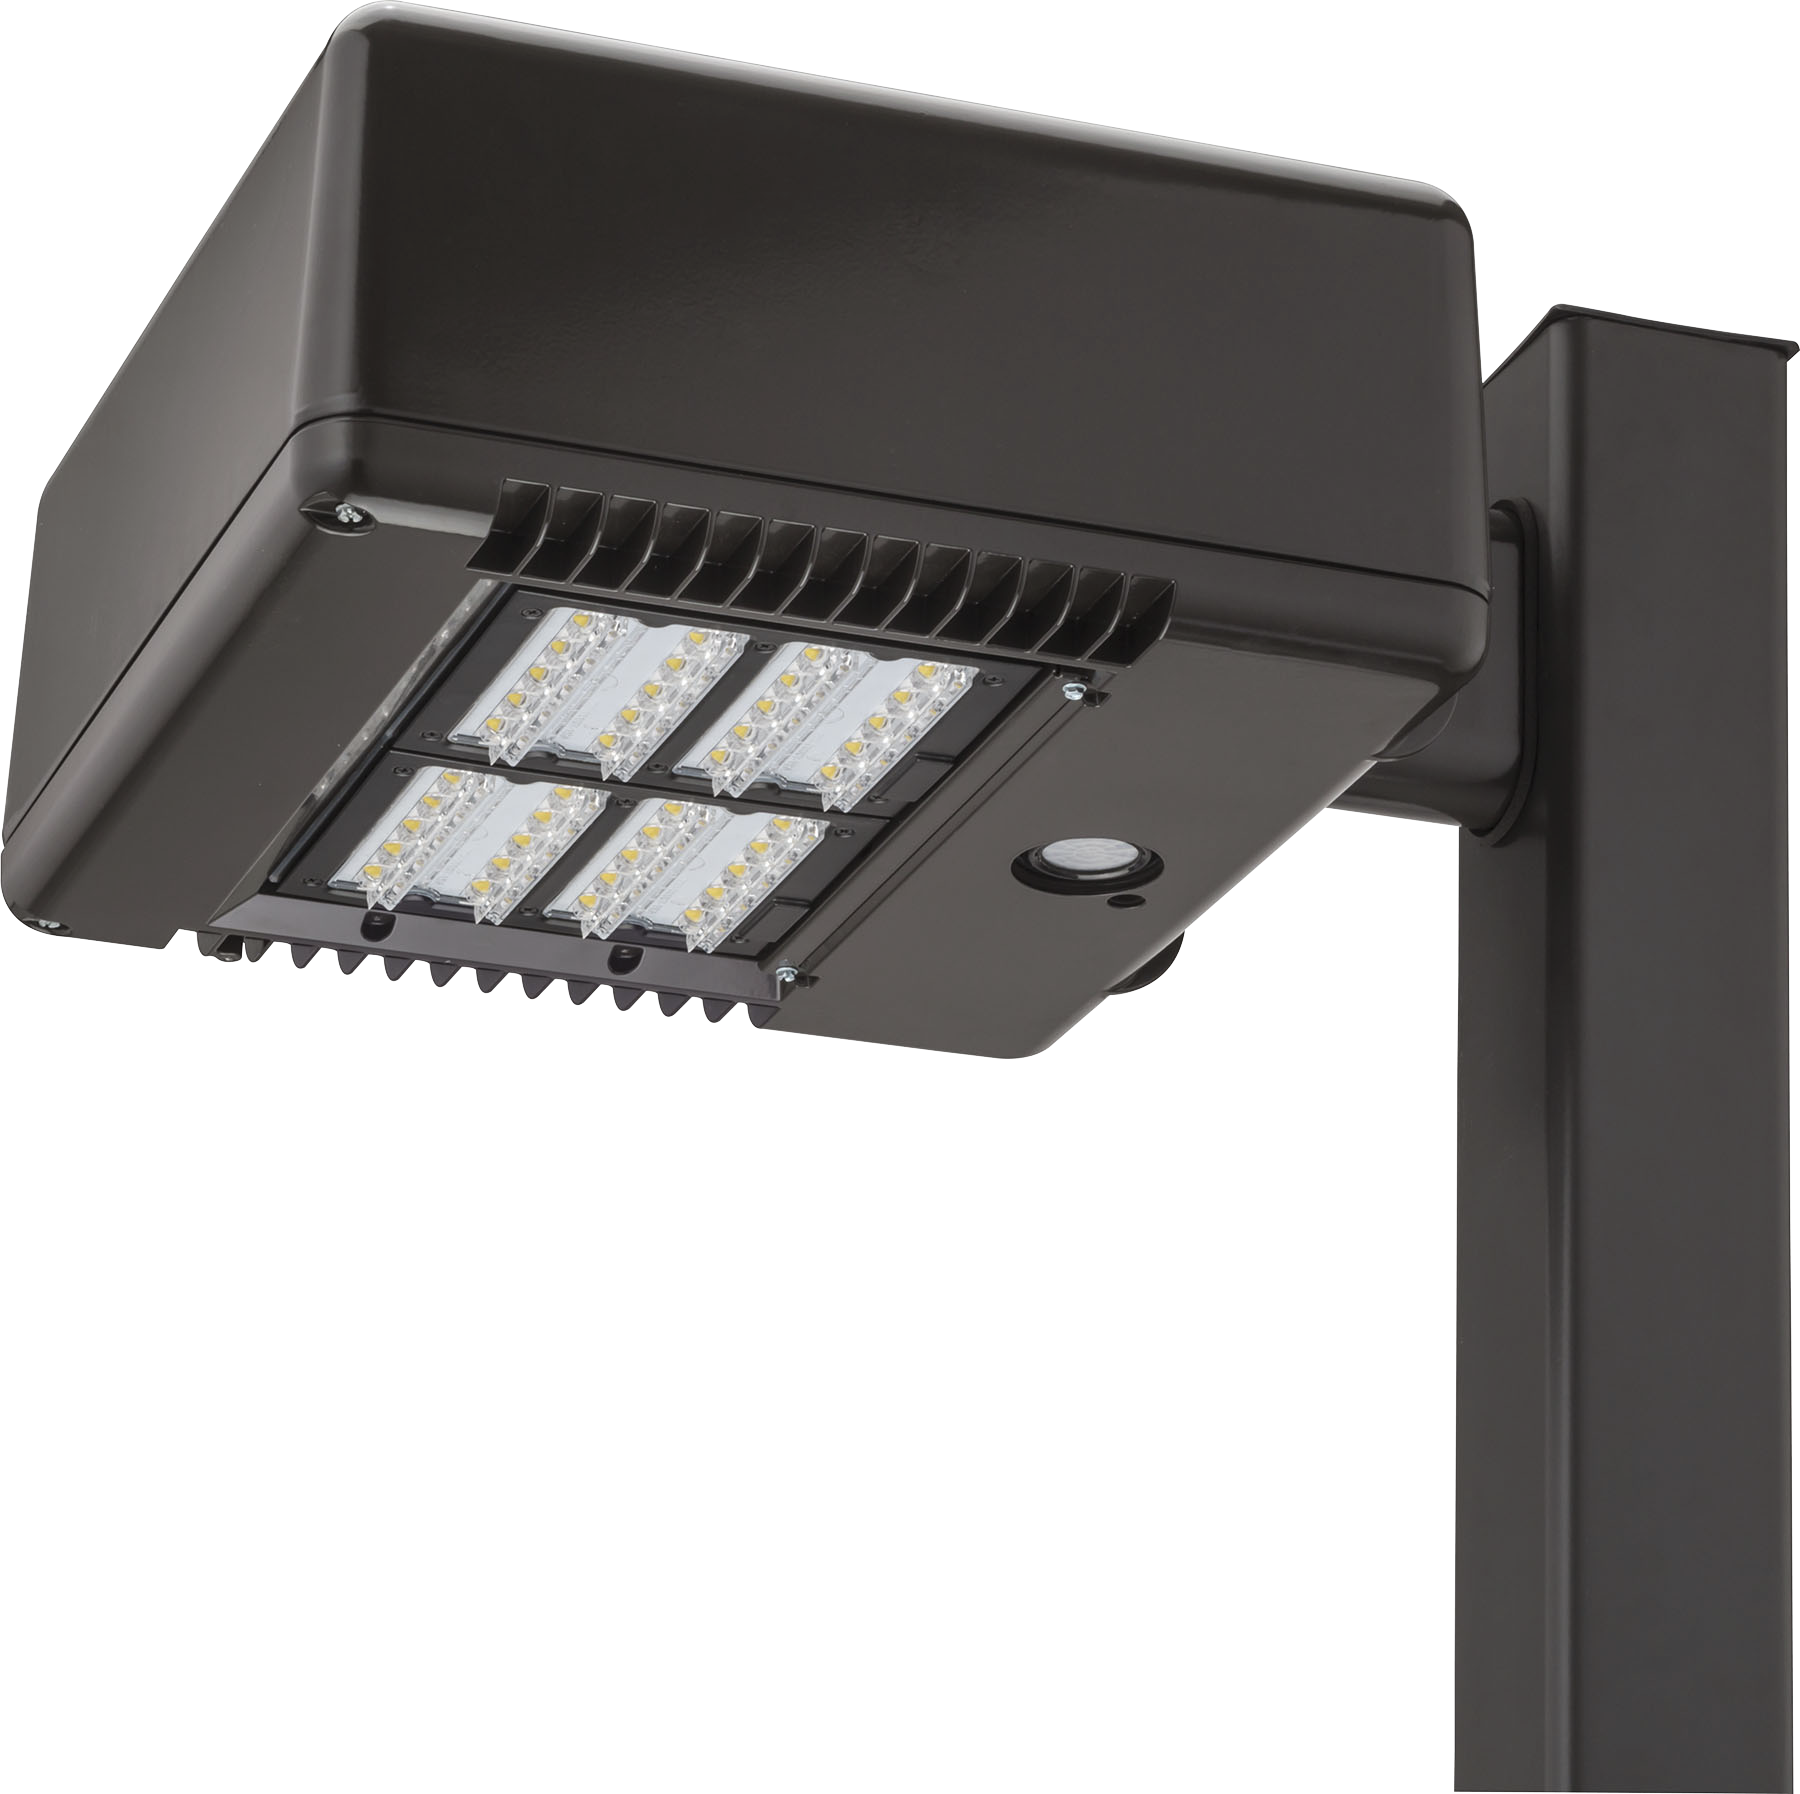 KAD LED with Motion Sensor